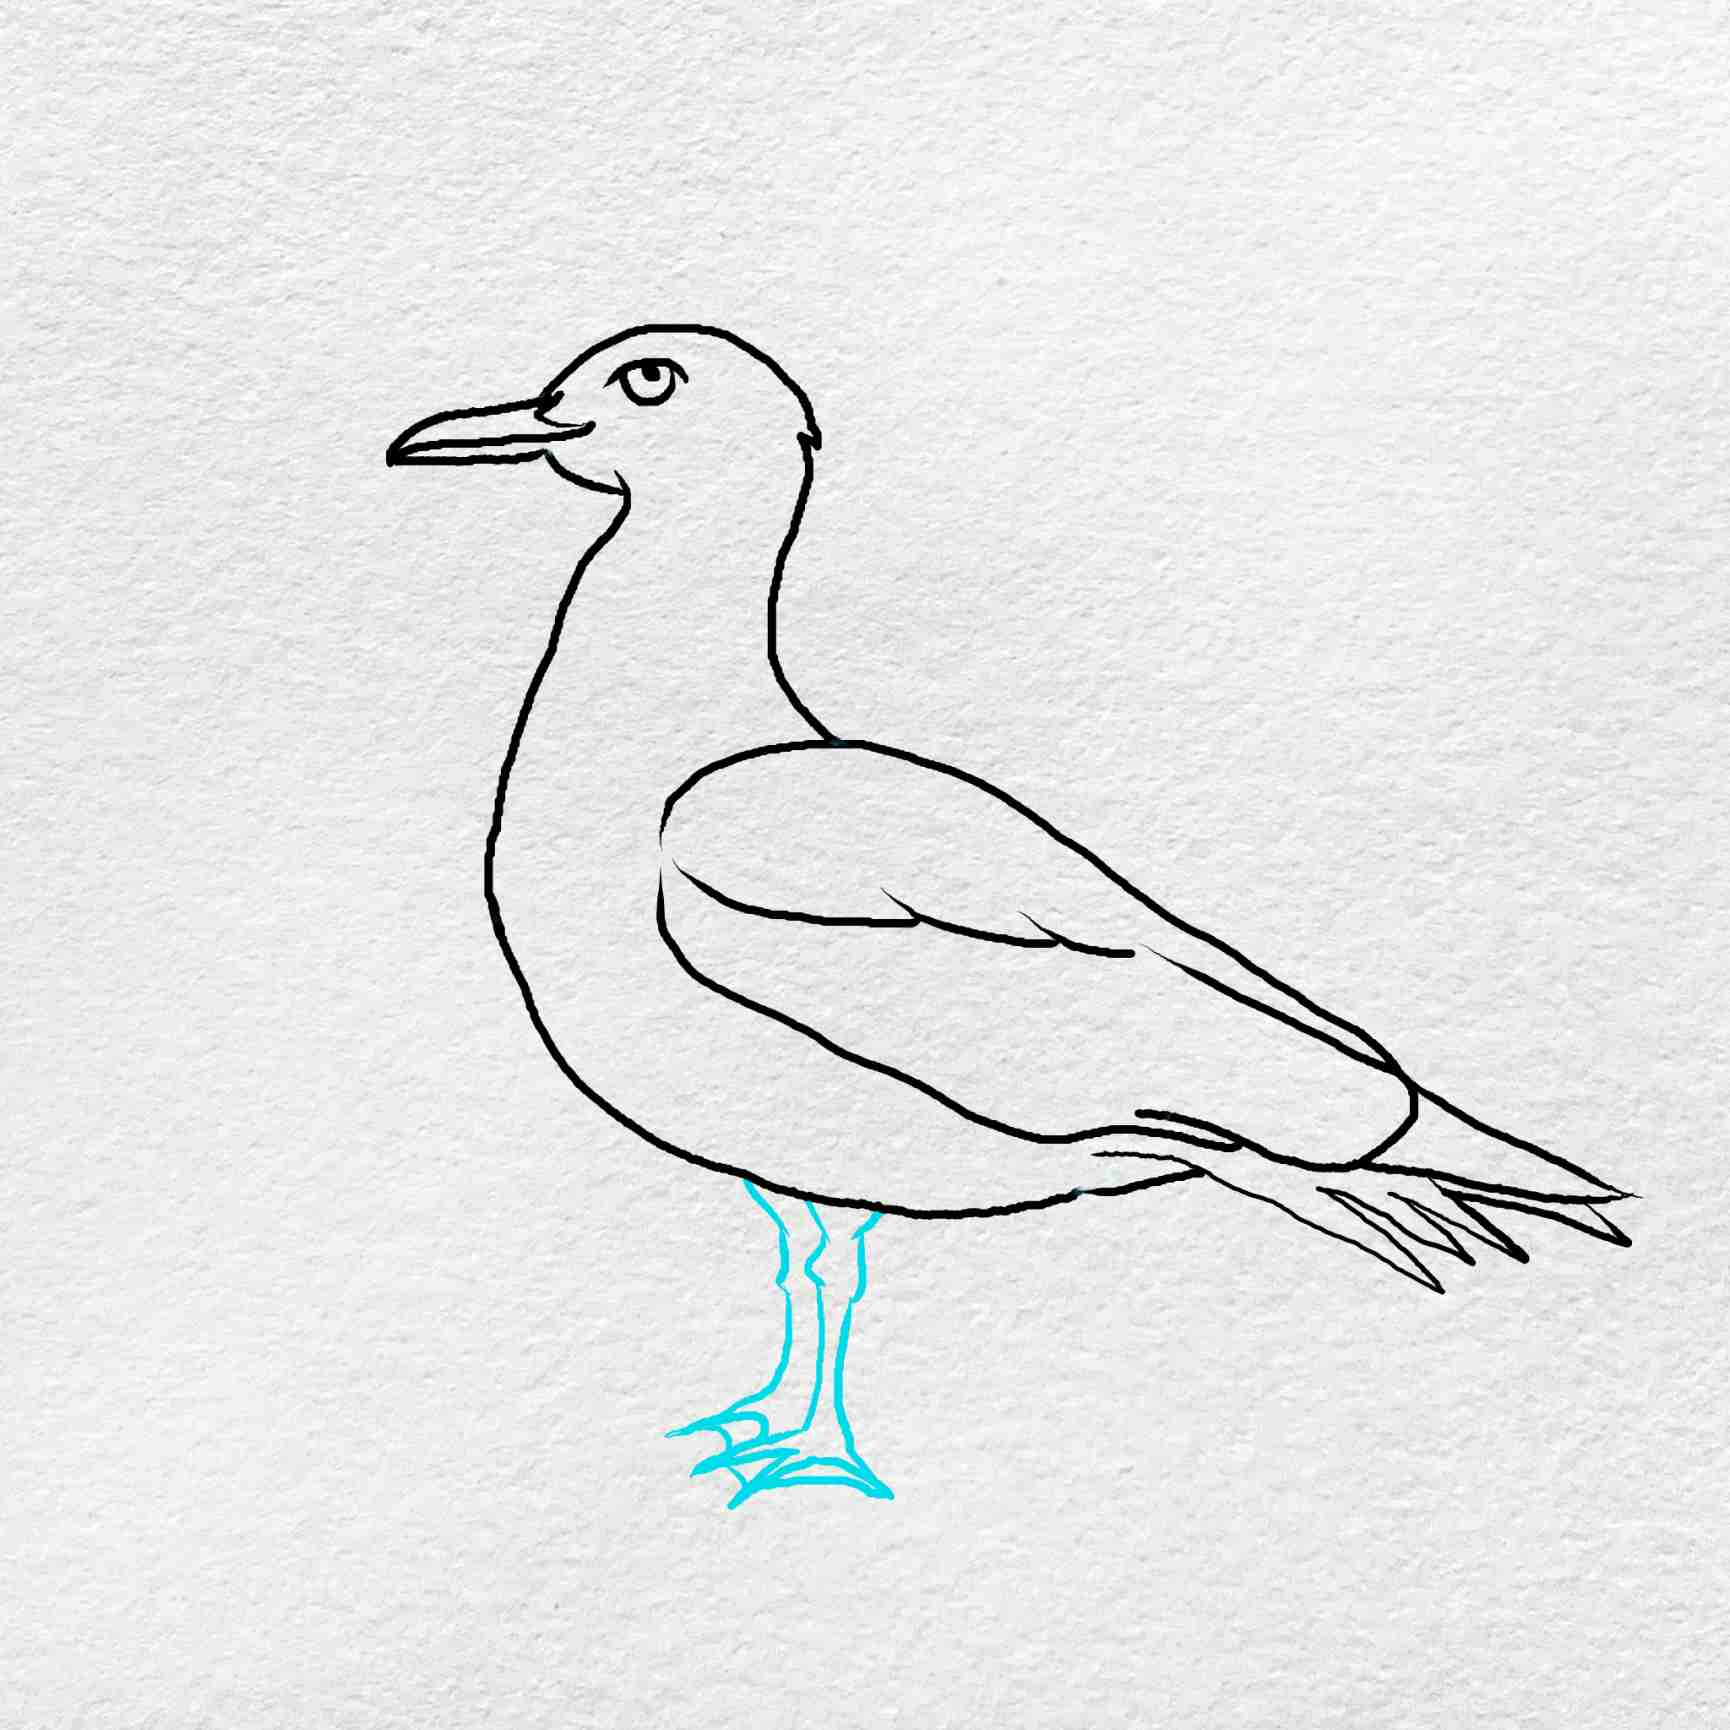 How To Draw A Seagull: Step 5